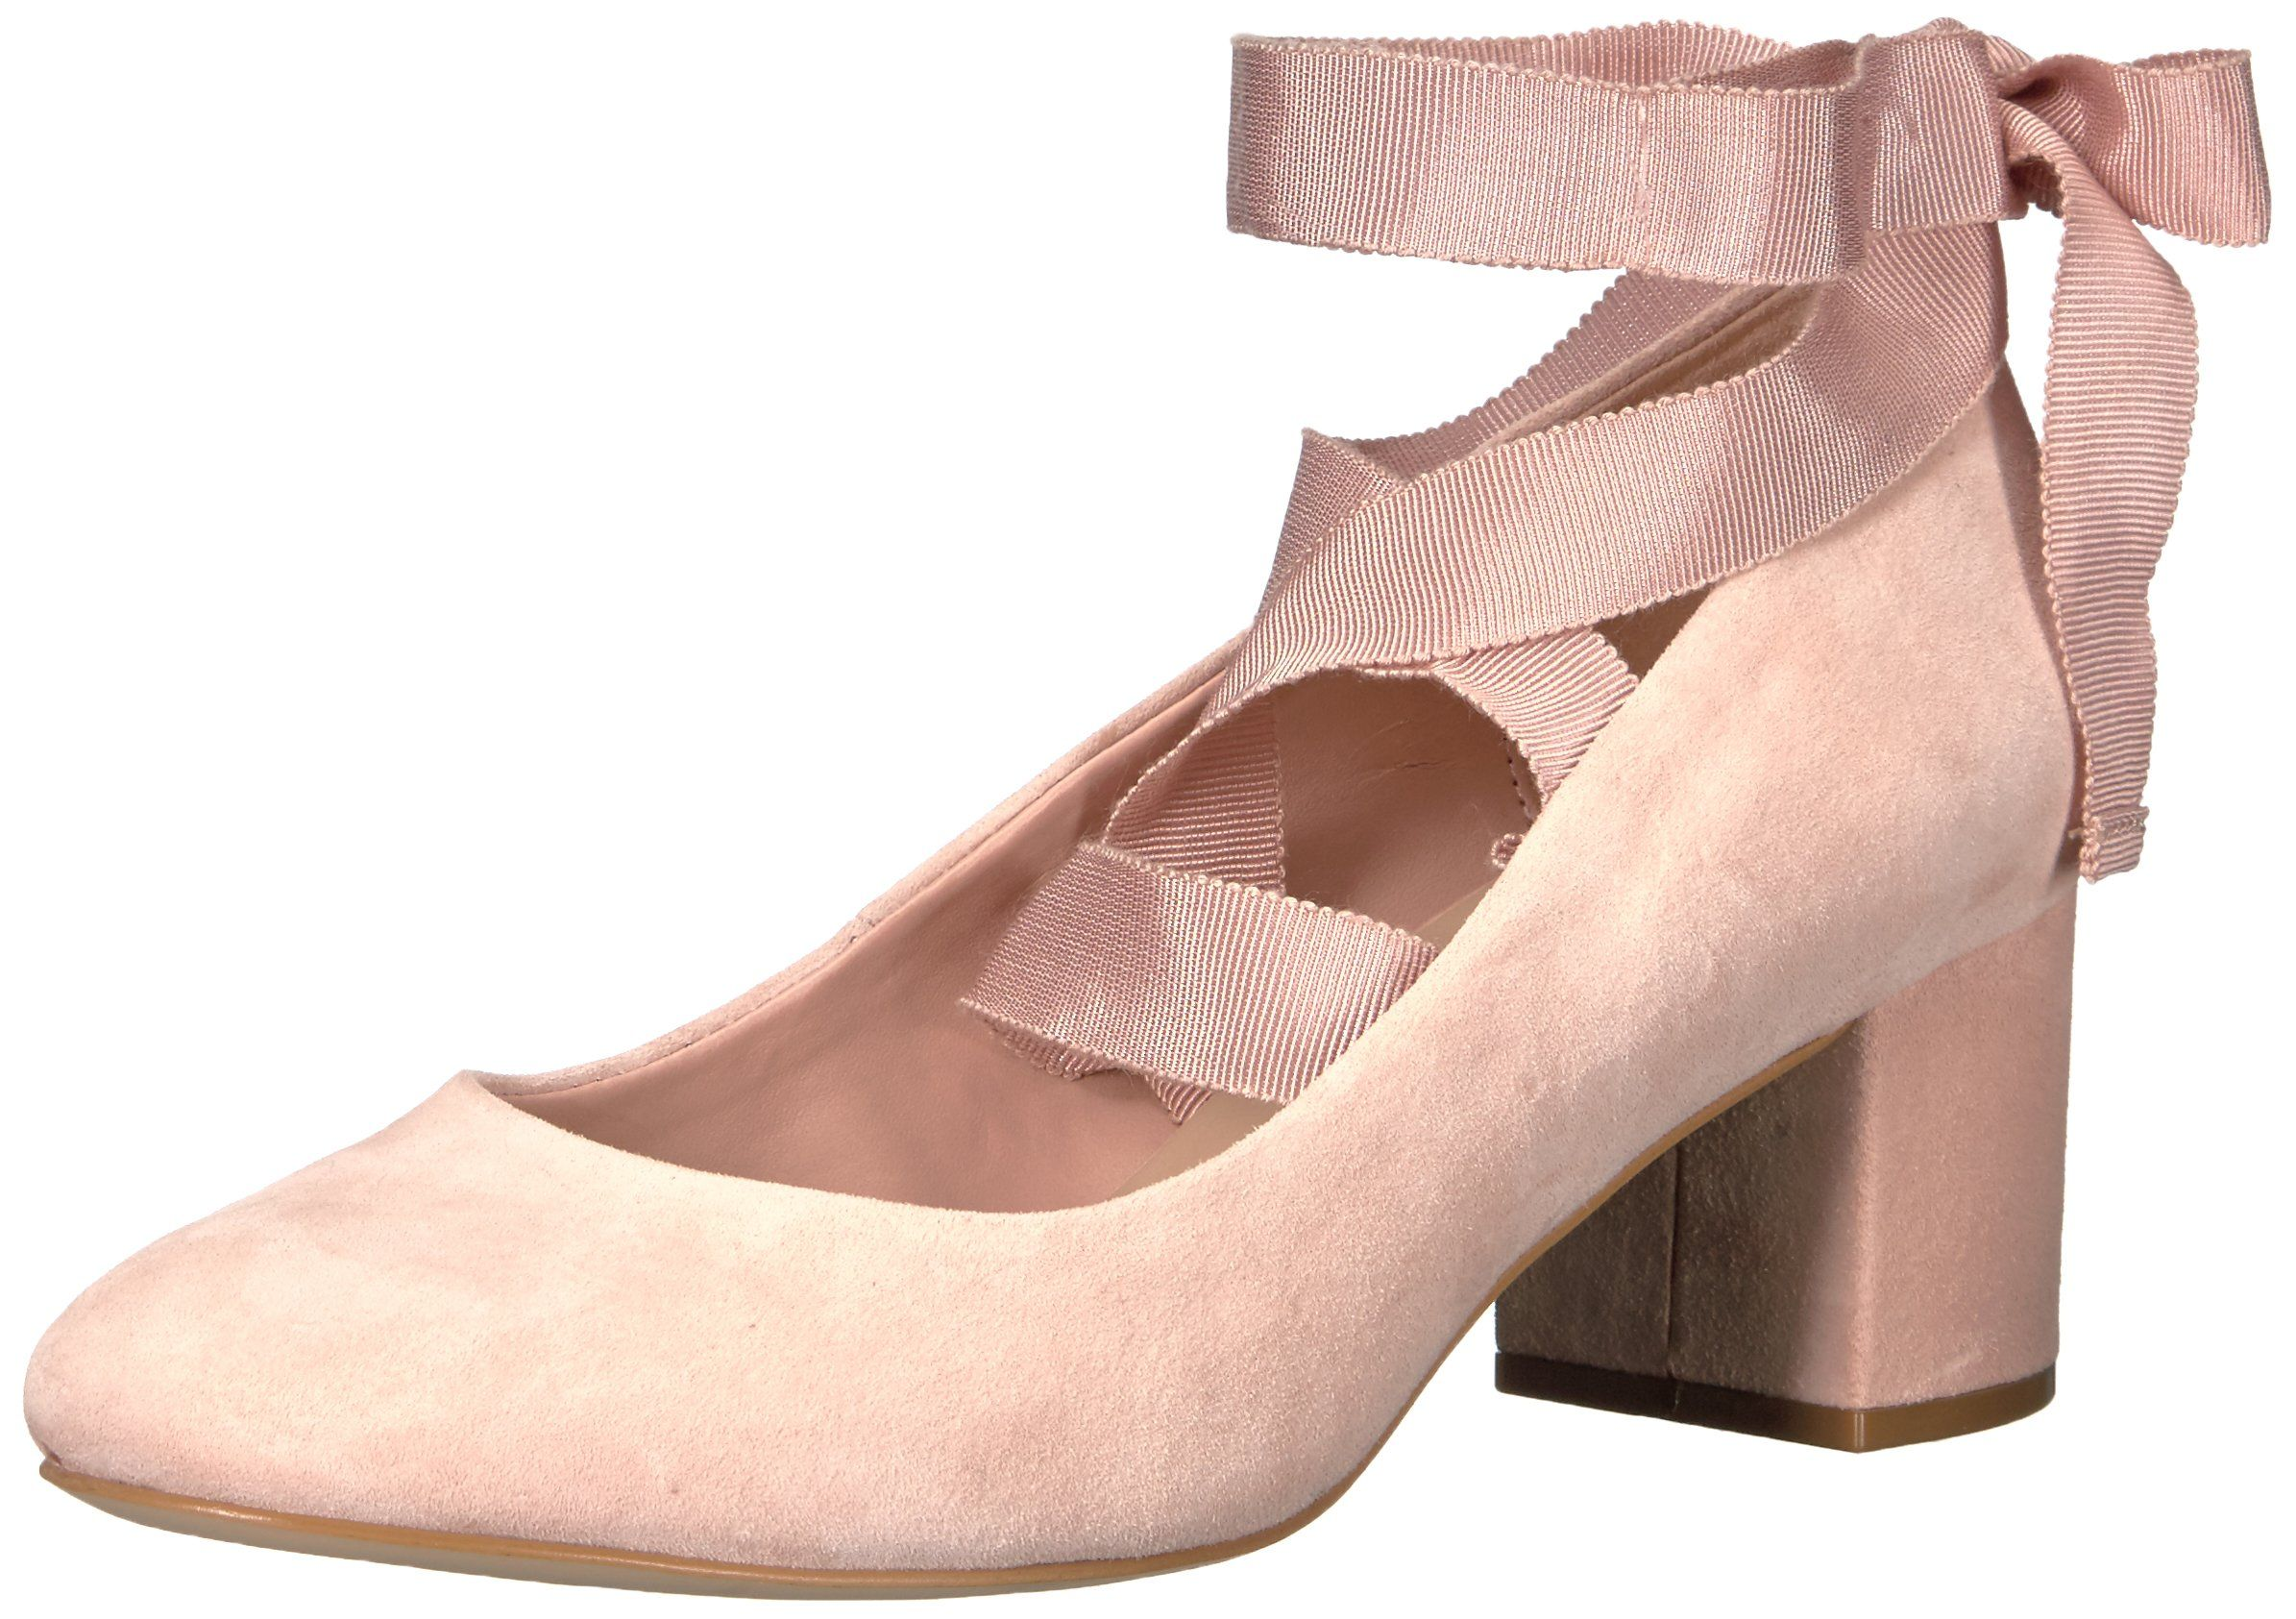 Shoes for light pink dress  Aldo Womenus Wunderly Dress Pump Light Pink  B US  Shoes  Pinterest